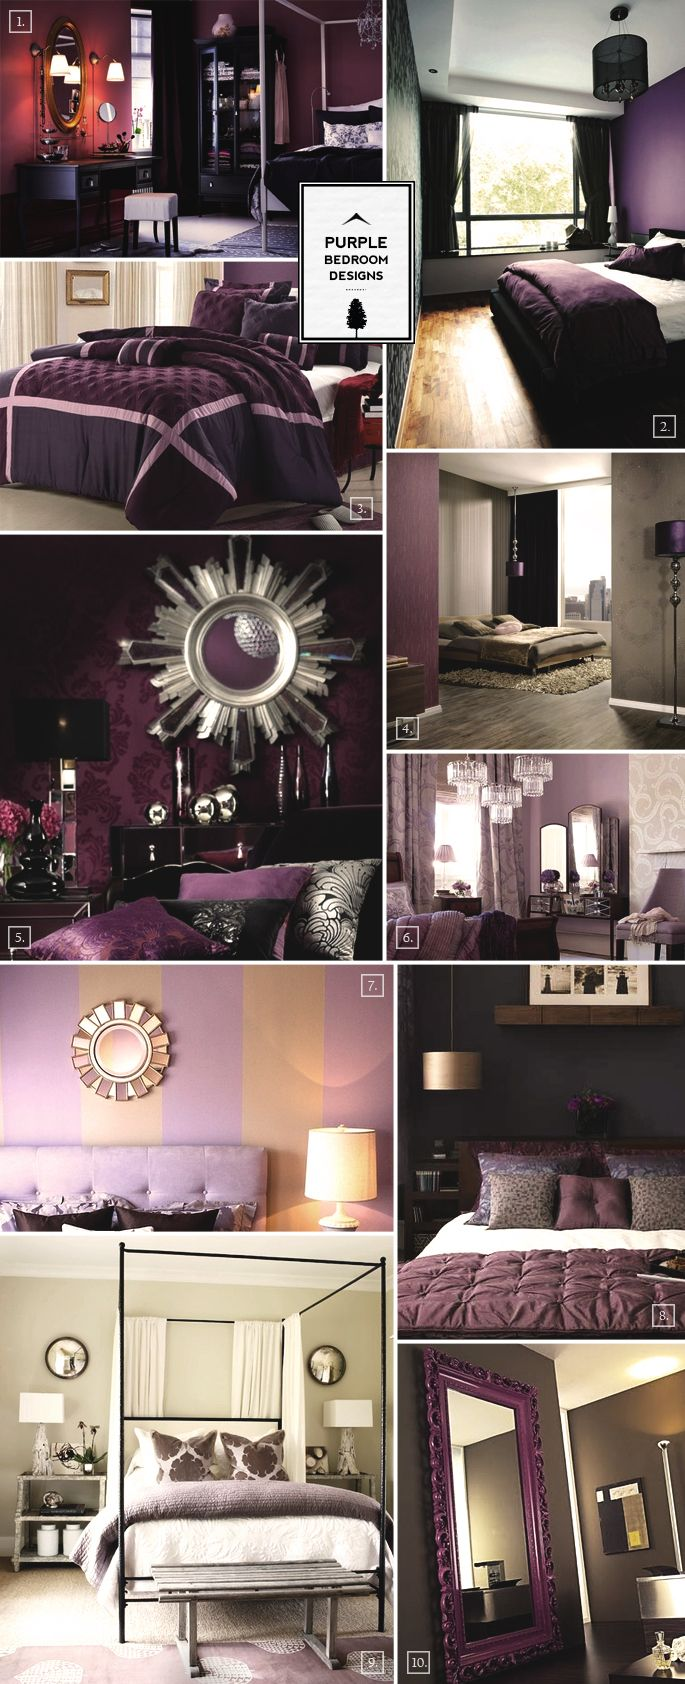 Purple bedroom designs inspiration mood board home - How much paint do i need for a bedroom ...